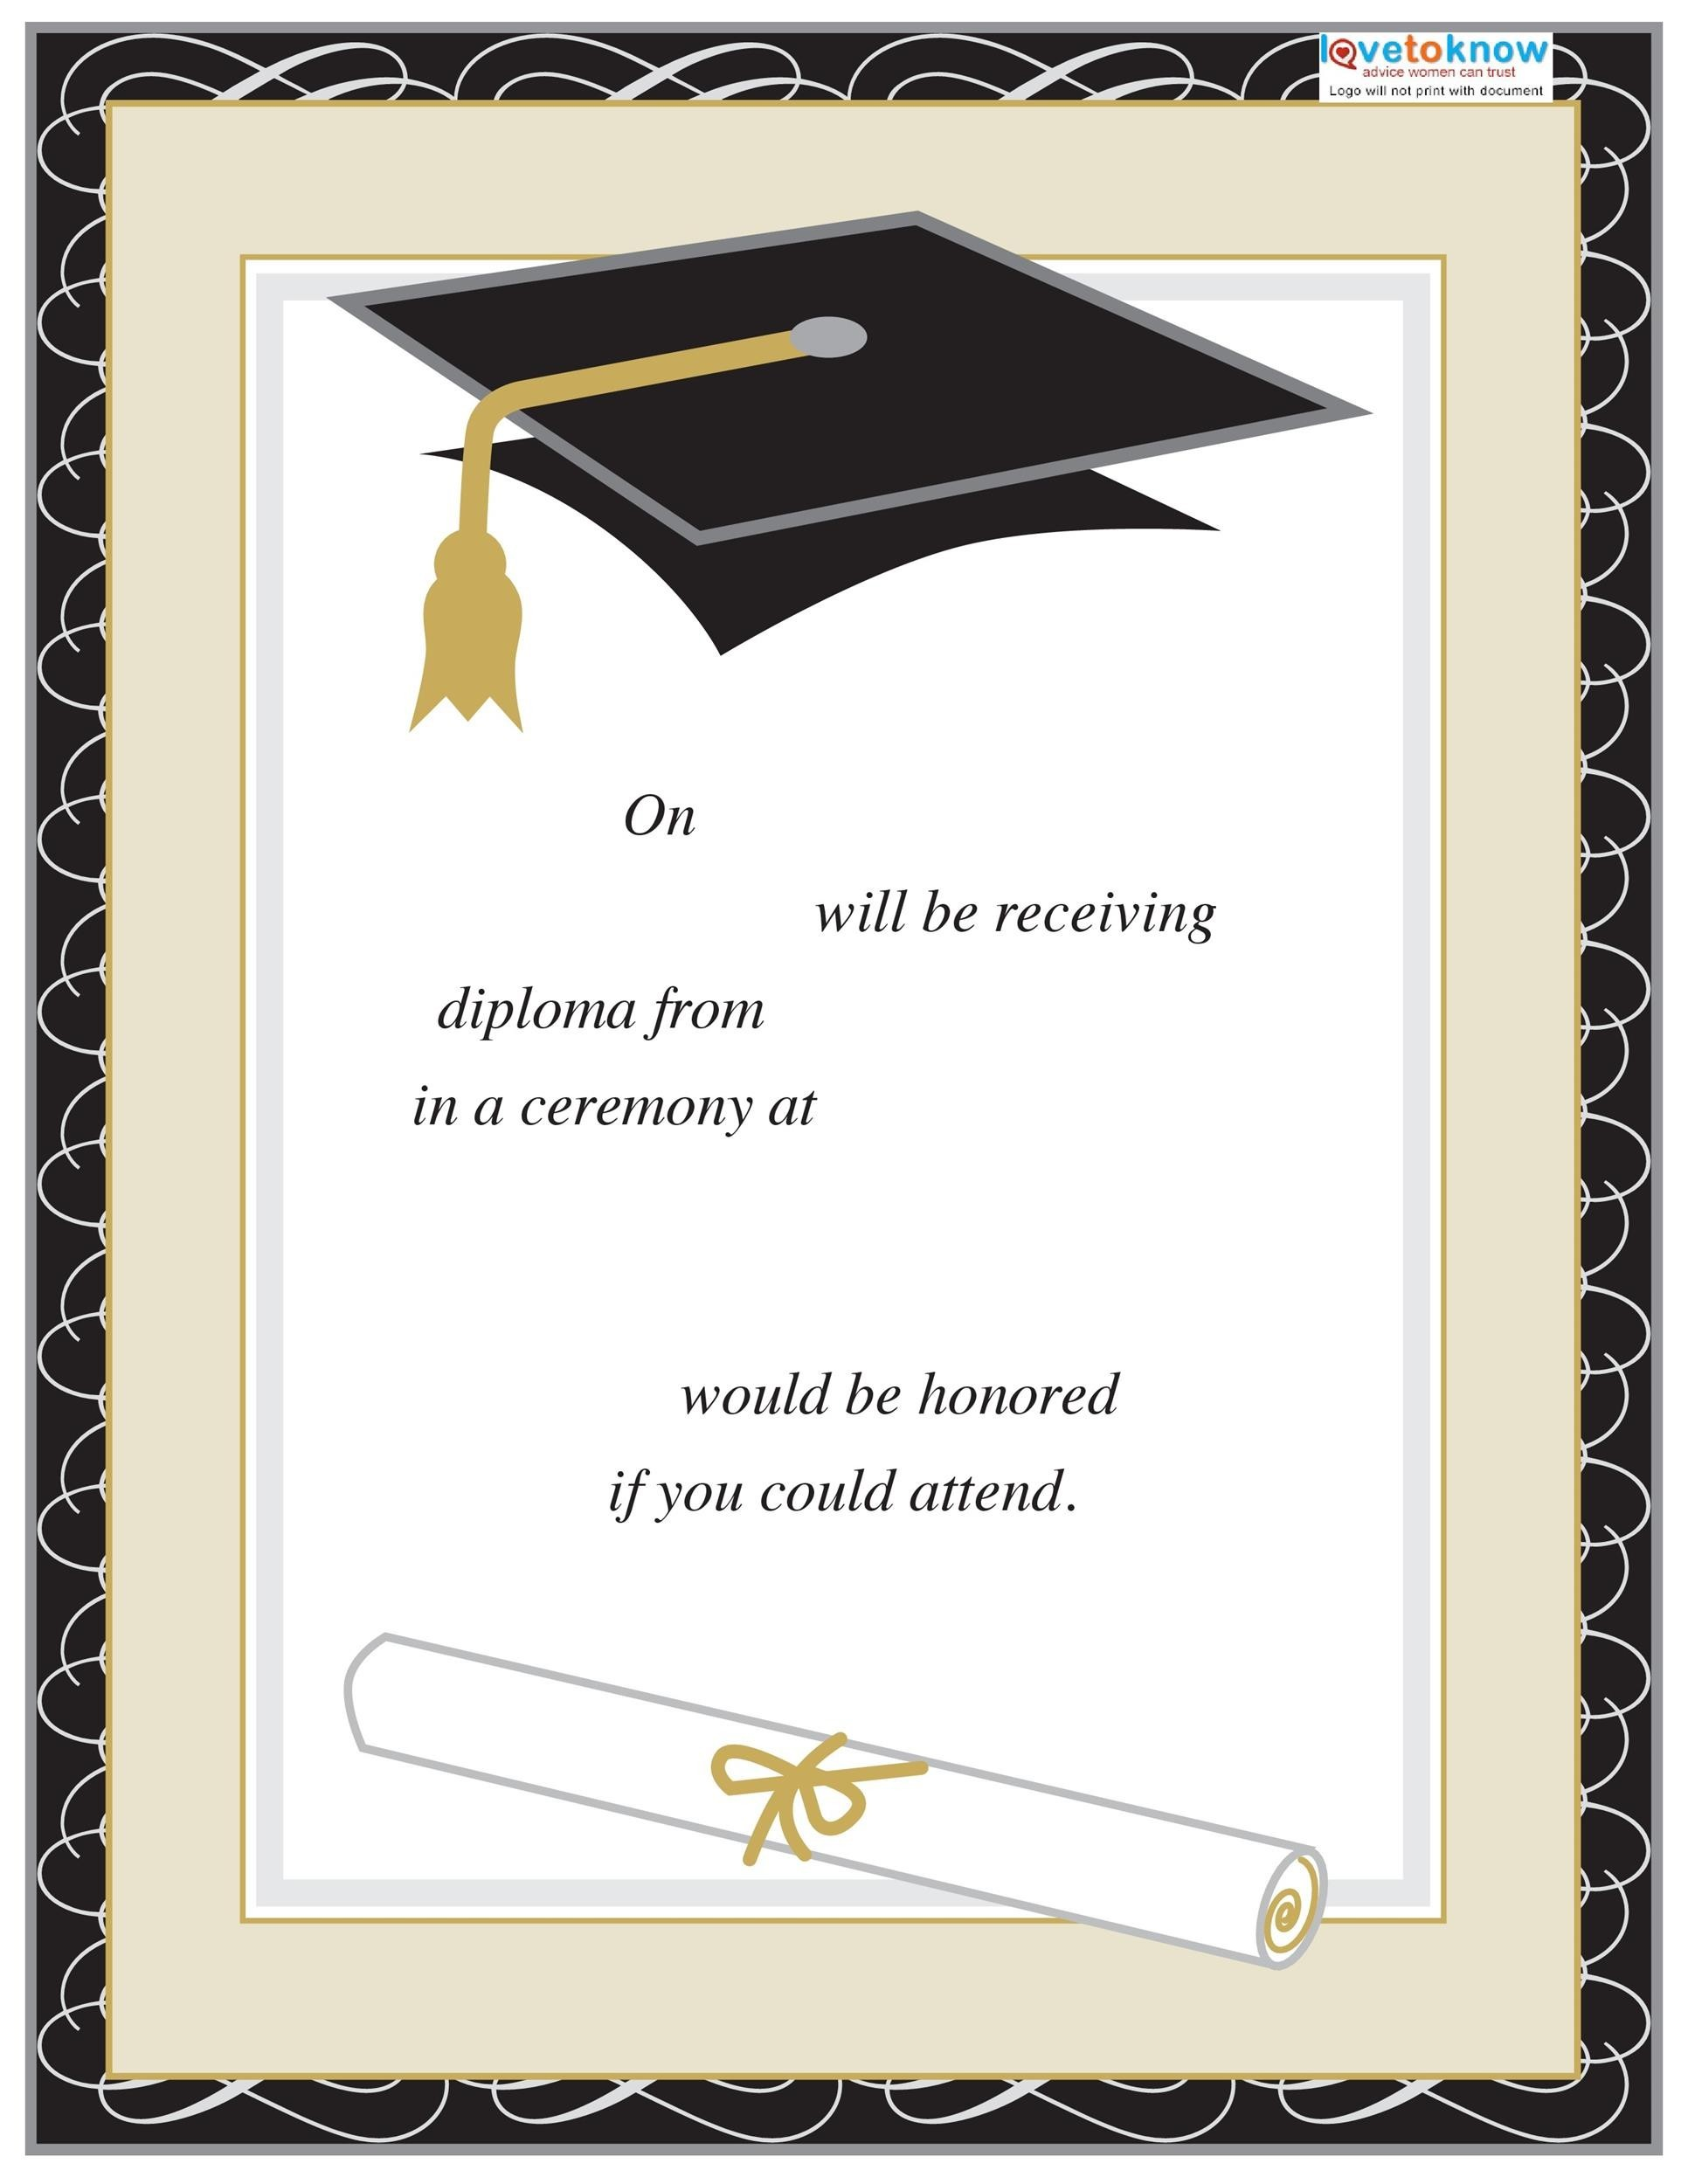 Invitation graduation ceremony akbaeenw invitation graduation ceremony spiritdancerdesigns Choice Image